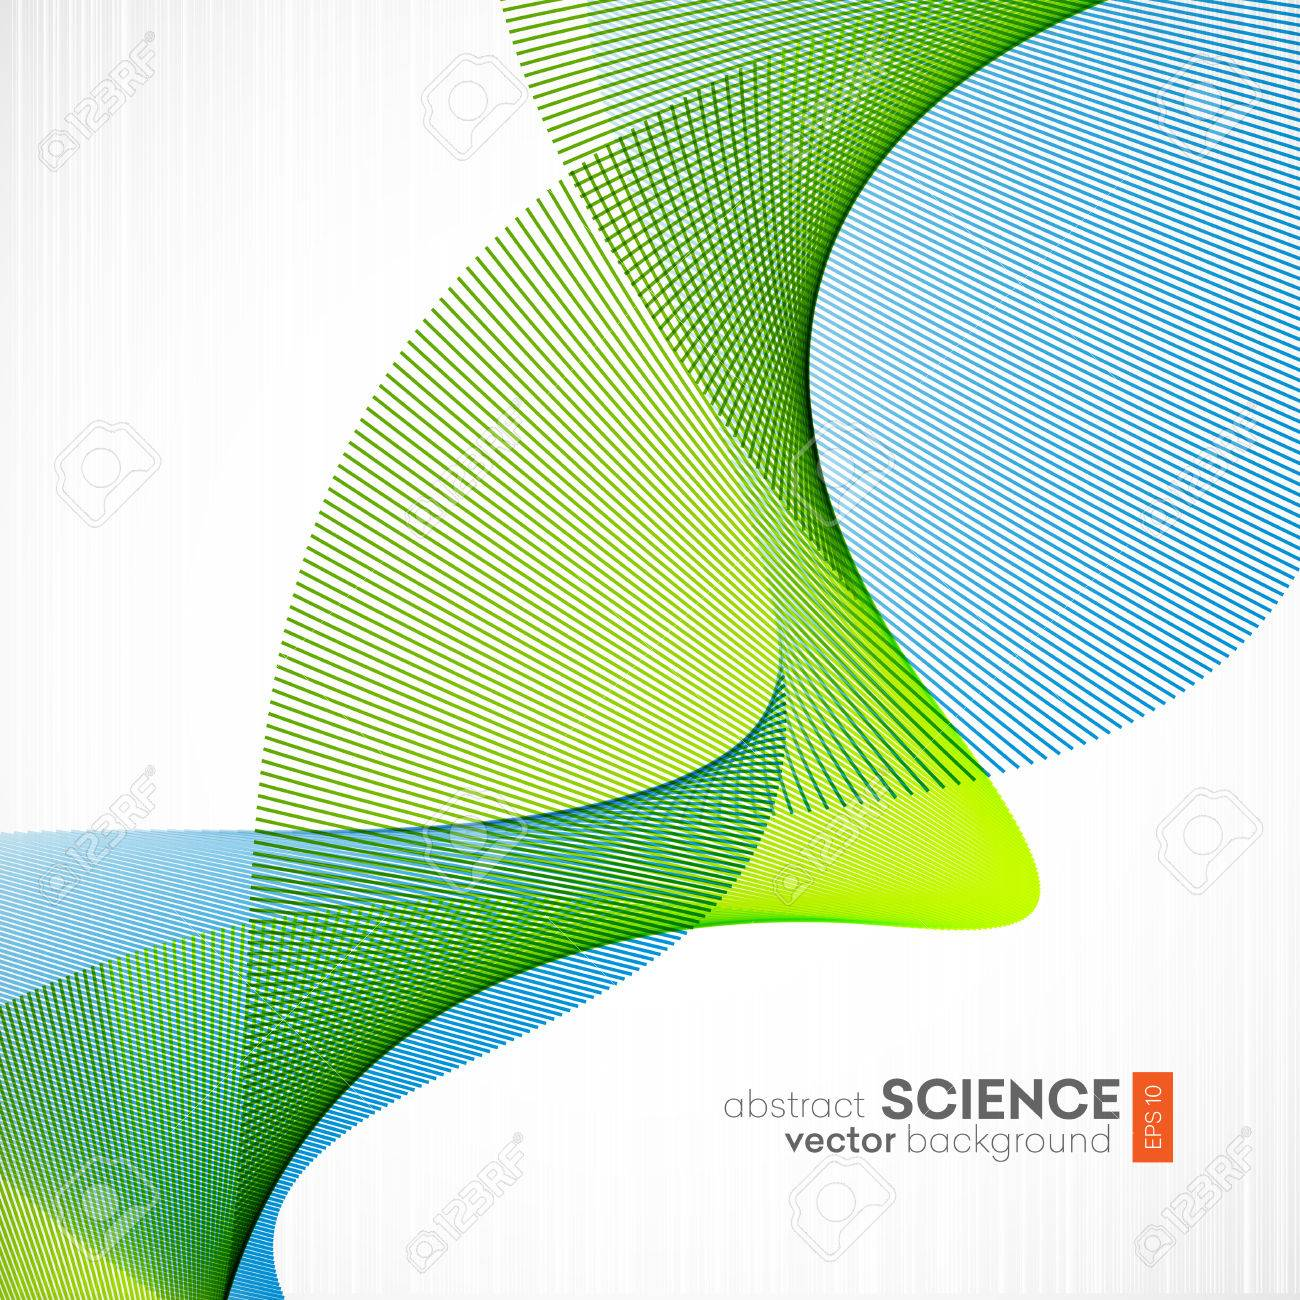 Background image 7945 - Abstract Vector Background Futuristic Wavy Illustration Eps10 Stock Vector 50079455